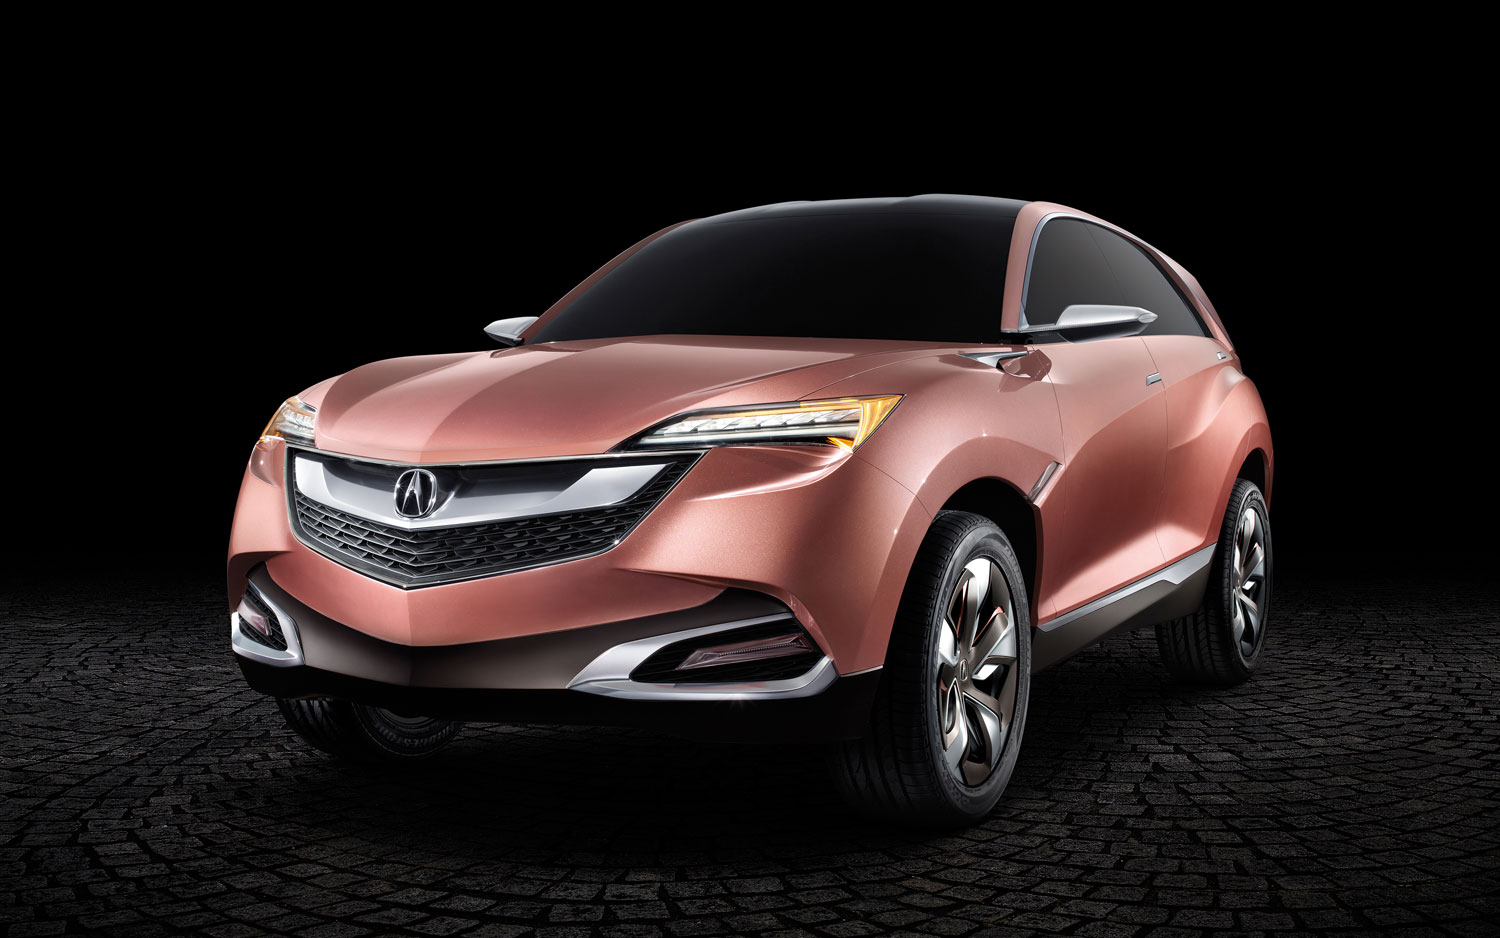 Suv: Honda Concept M, Acura SUV-X Debut In Shanghai